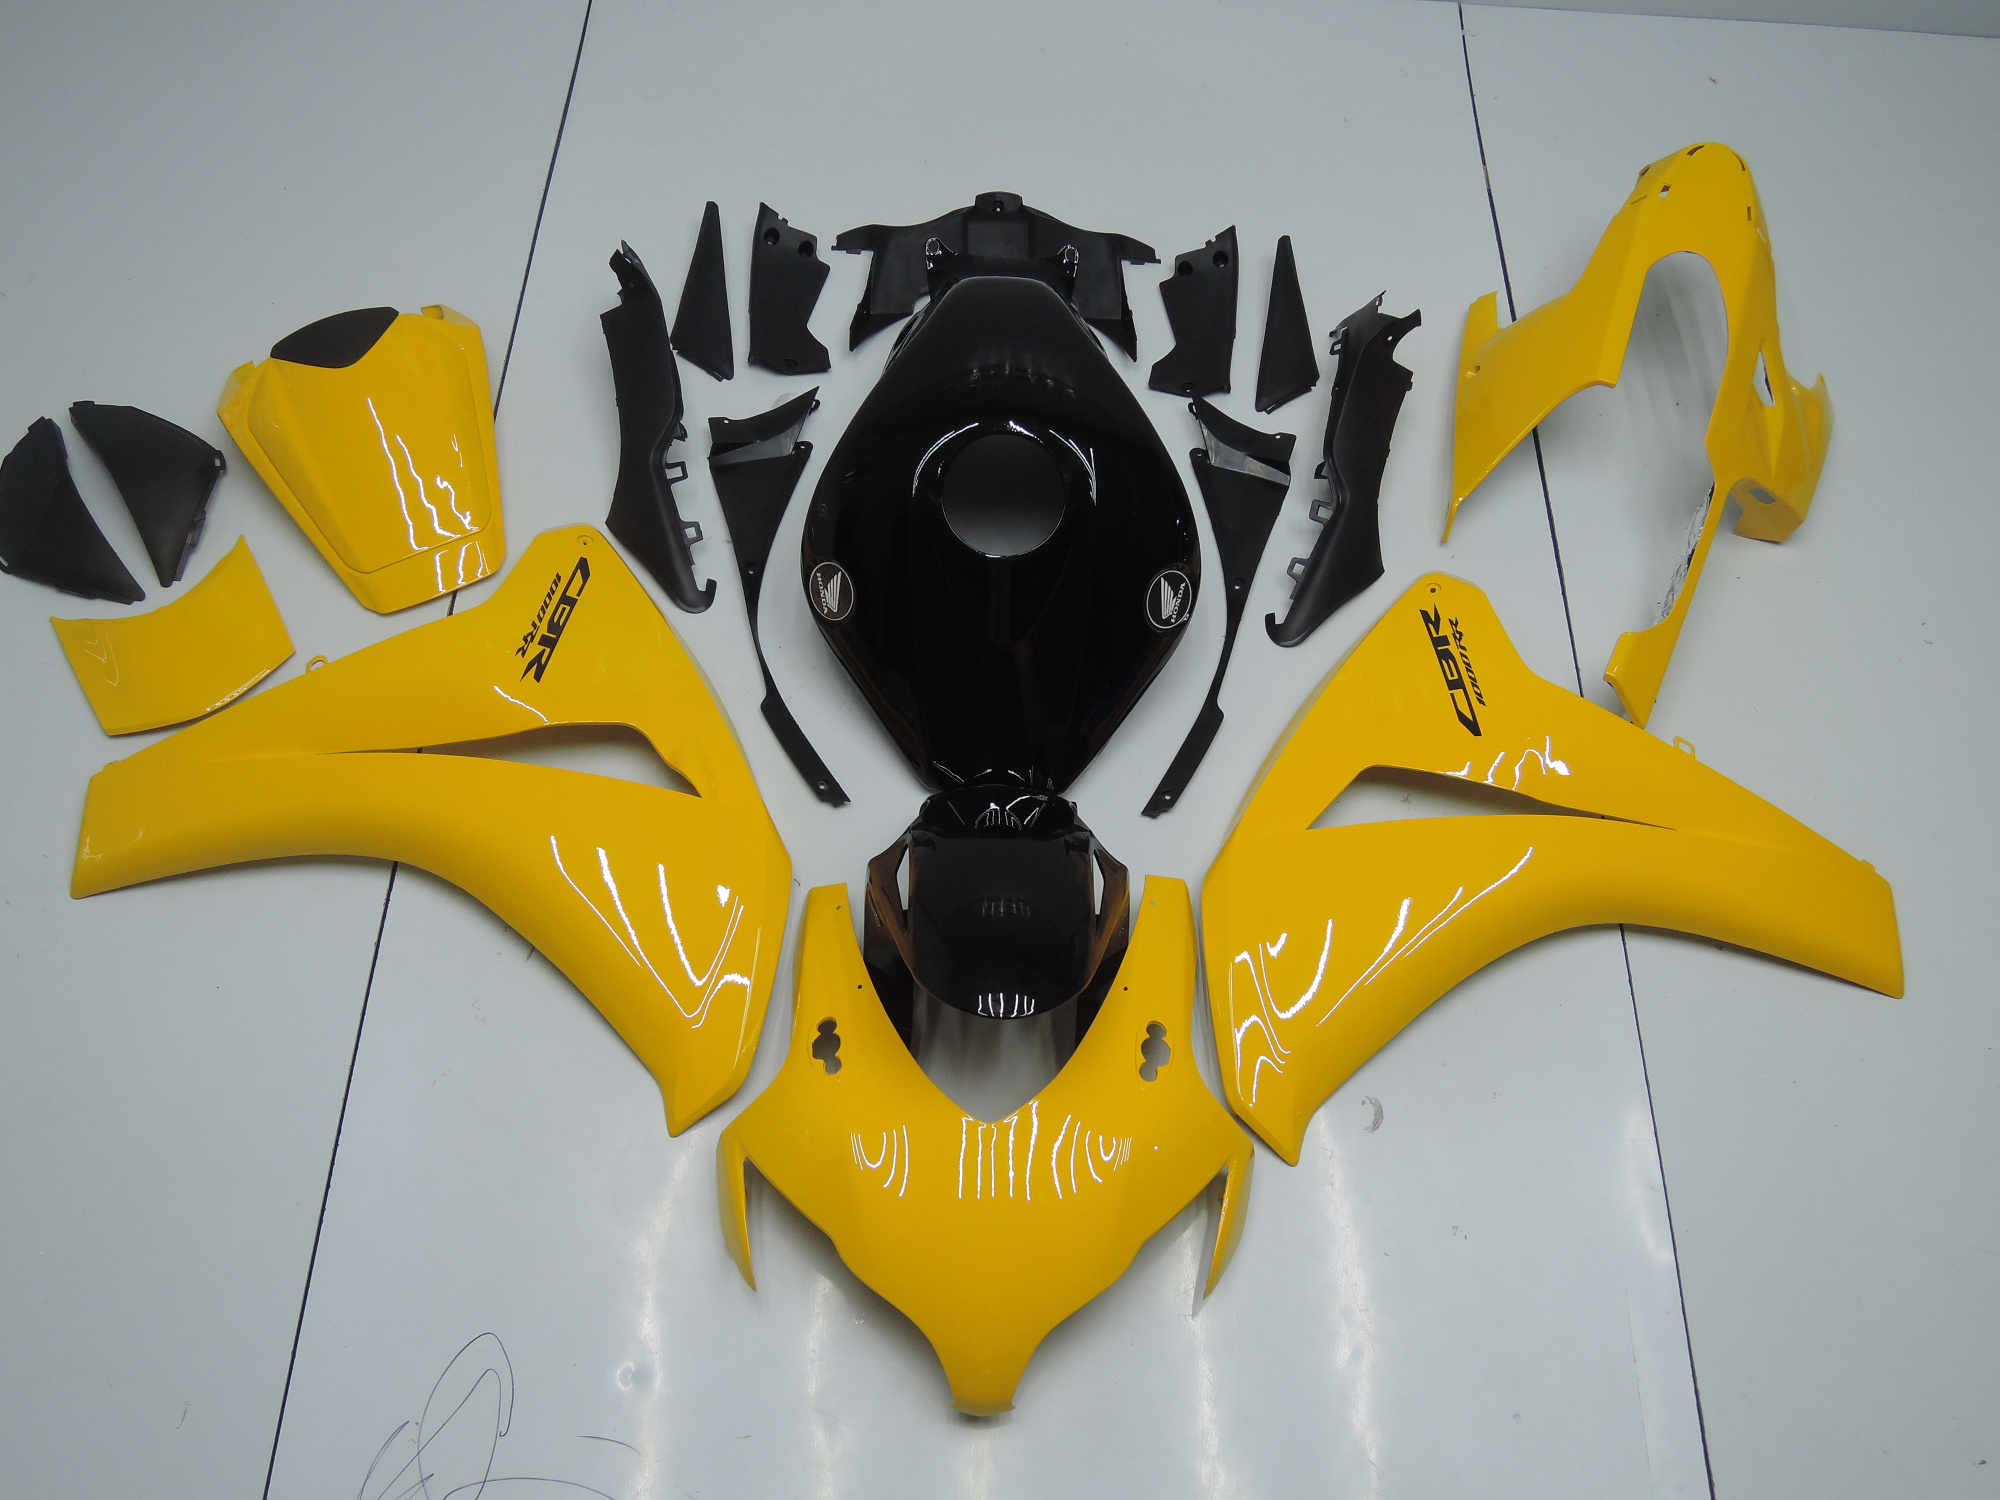 CBR1000RR 2008-2011 YELLOW AND BLACK